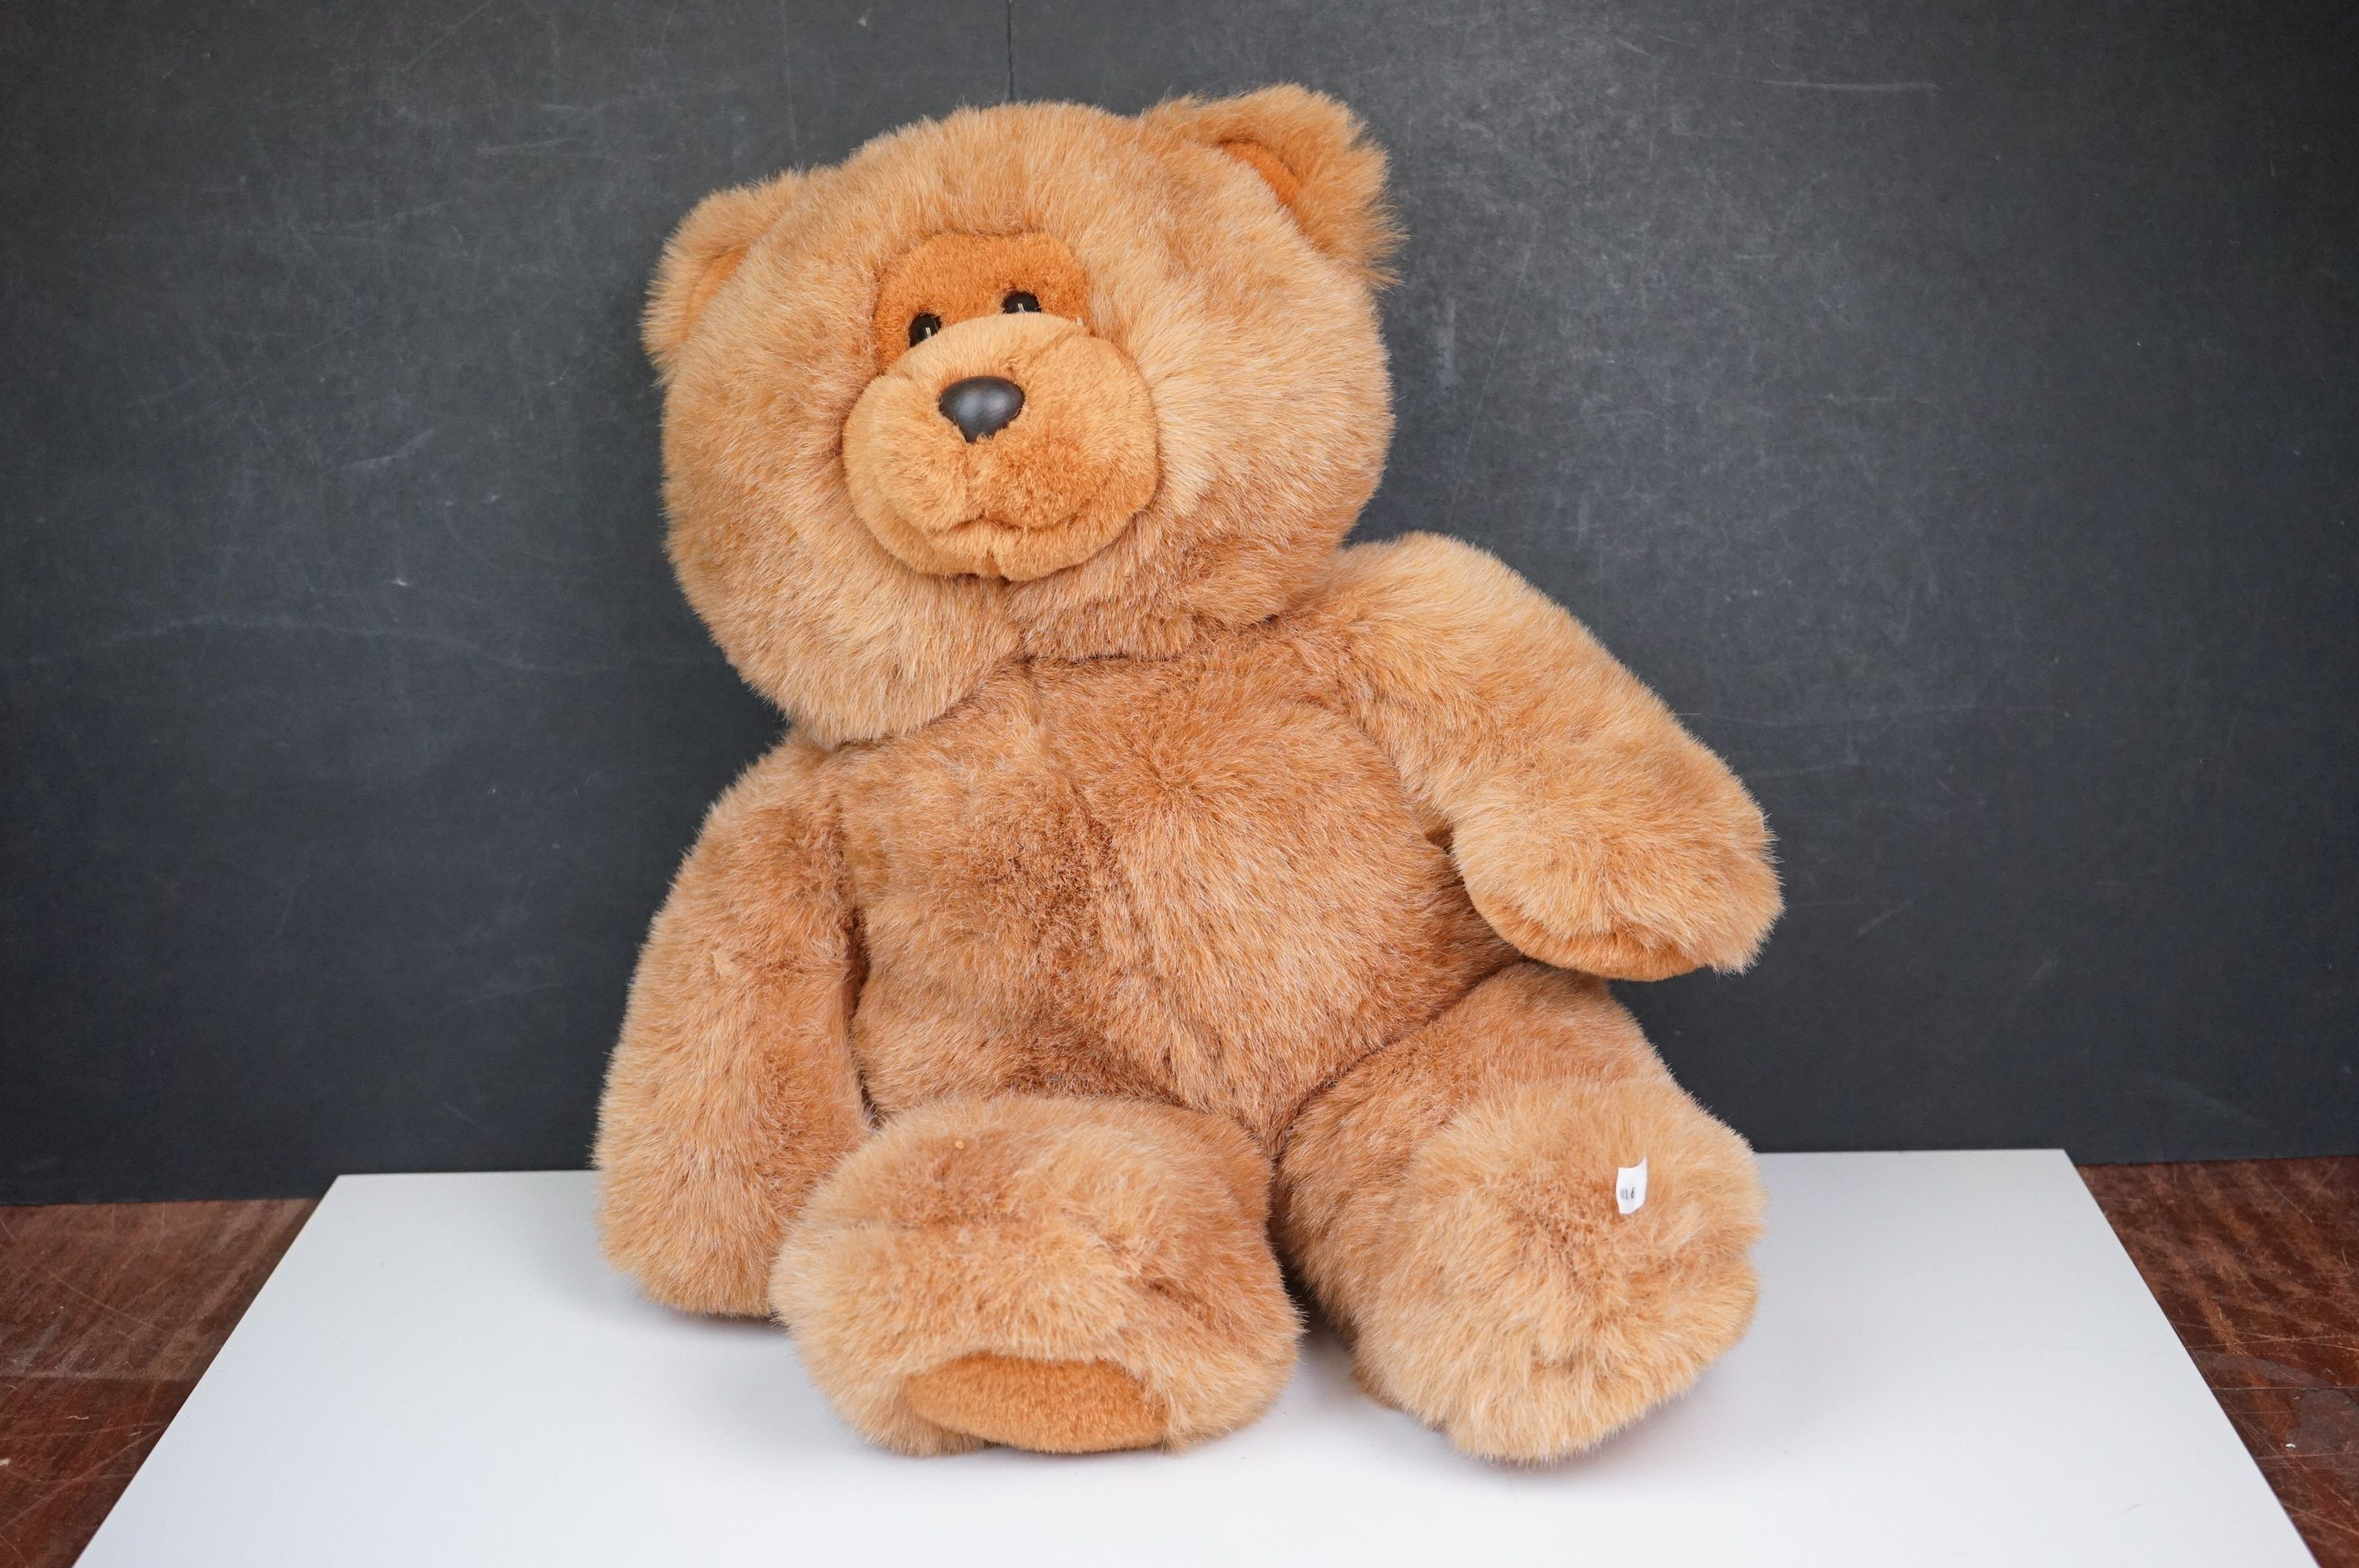 Steiff Teddy Bear, Two Merrythoughts Teddy Bears with Burgundy & Gold Ribbons to neck plus one - Image 2 of 8